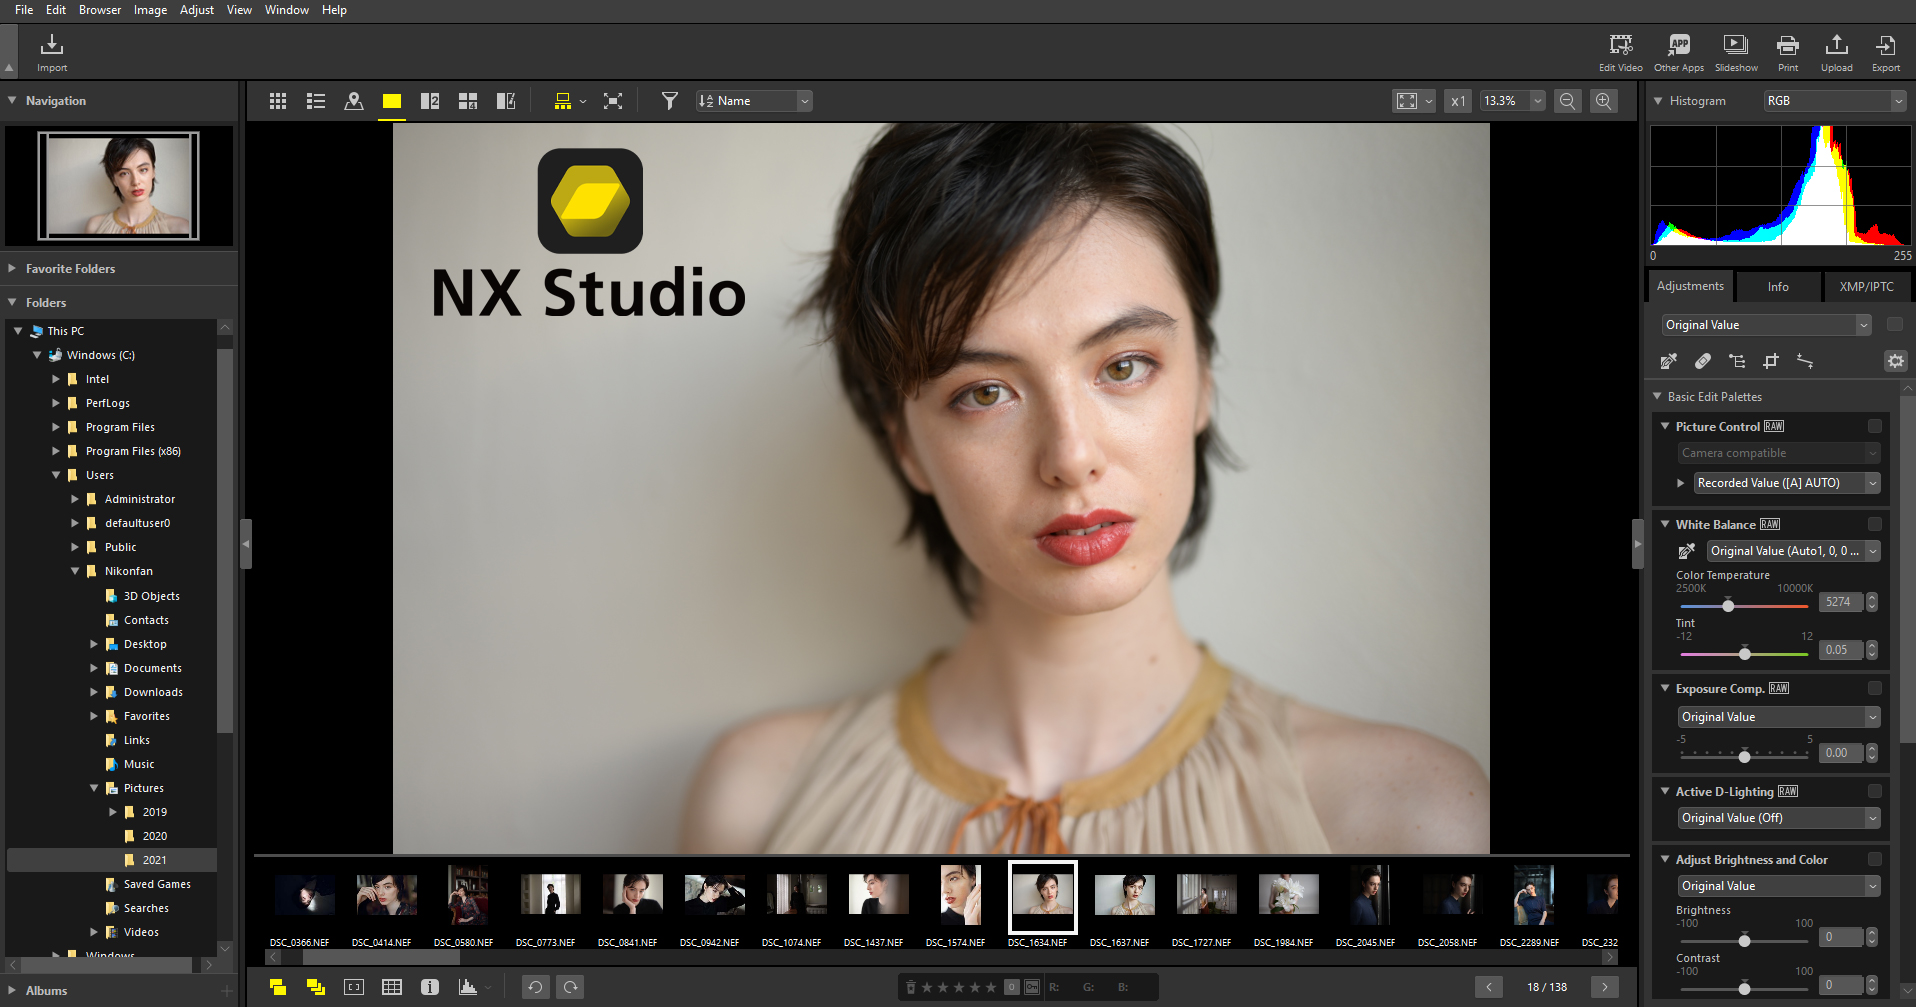 Nikon releases new photo-editing software - and it's free - Amateur Photographer